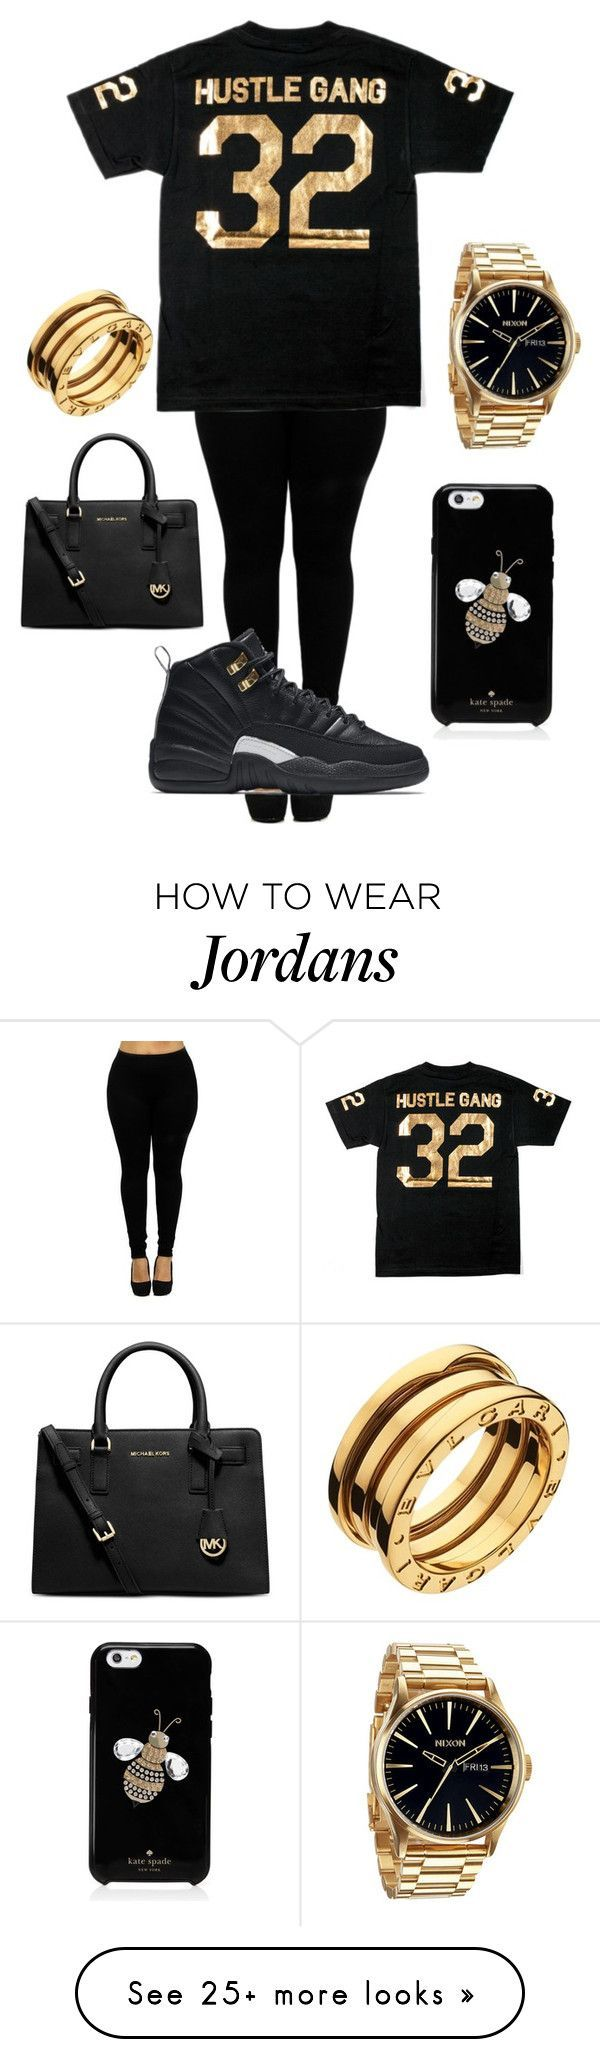 """Hustle Gang"" by therealangel on Polyvore featuring Michael Kors, NIKE, Nixon, Bulgari and Kate Spade"